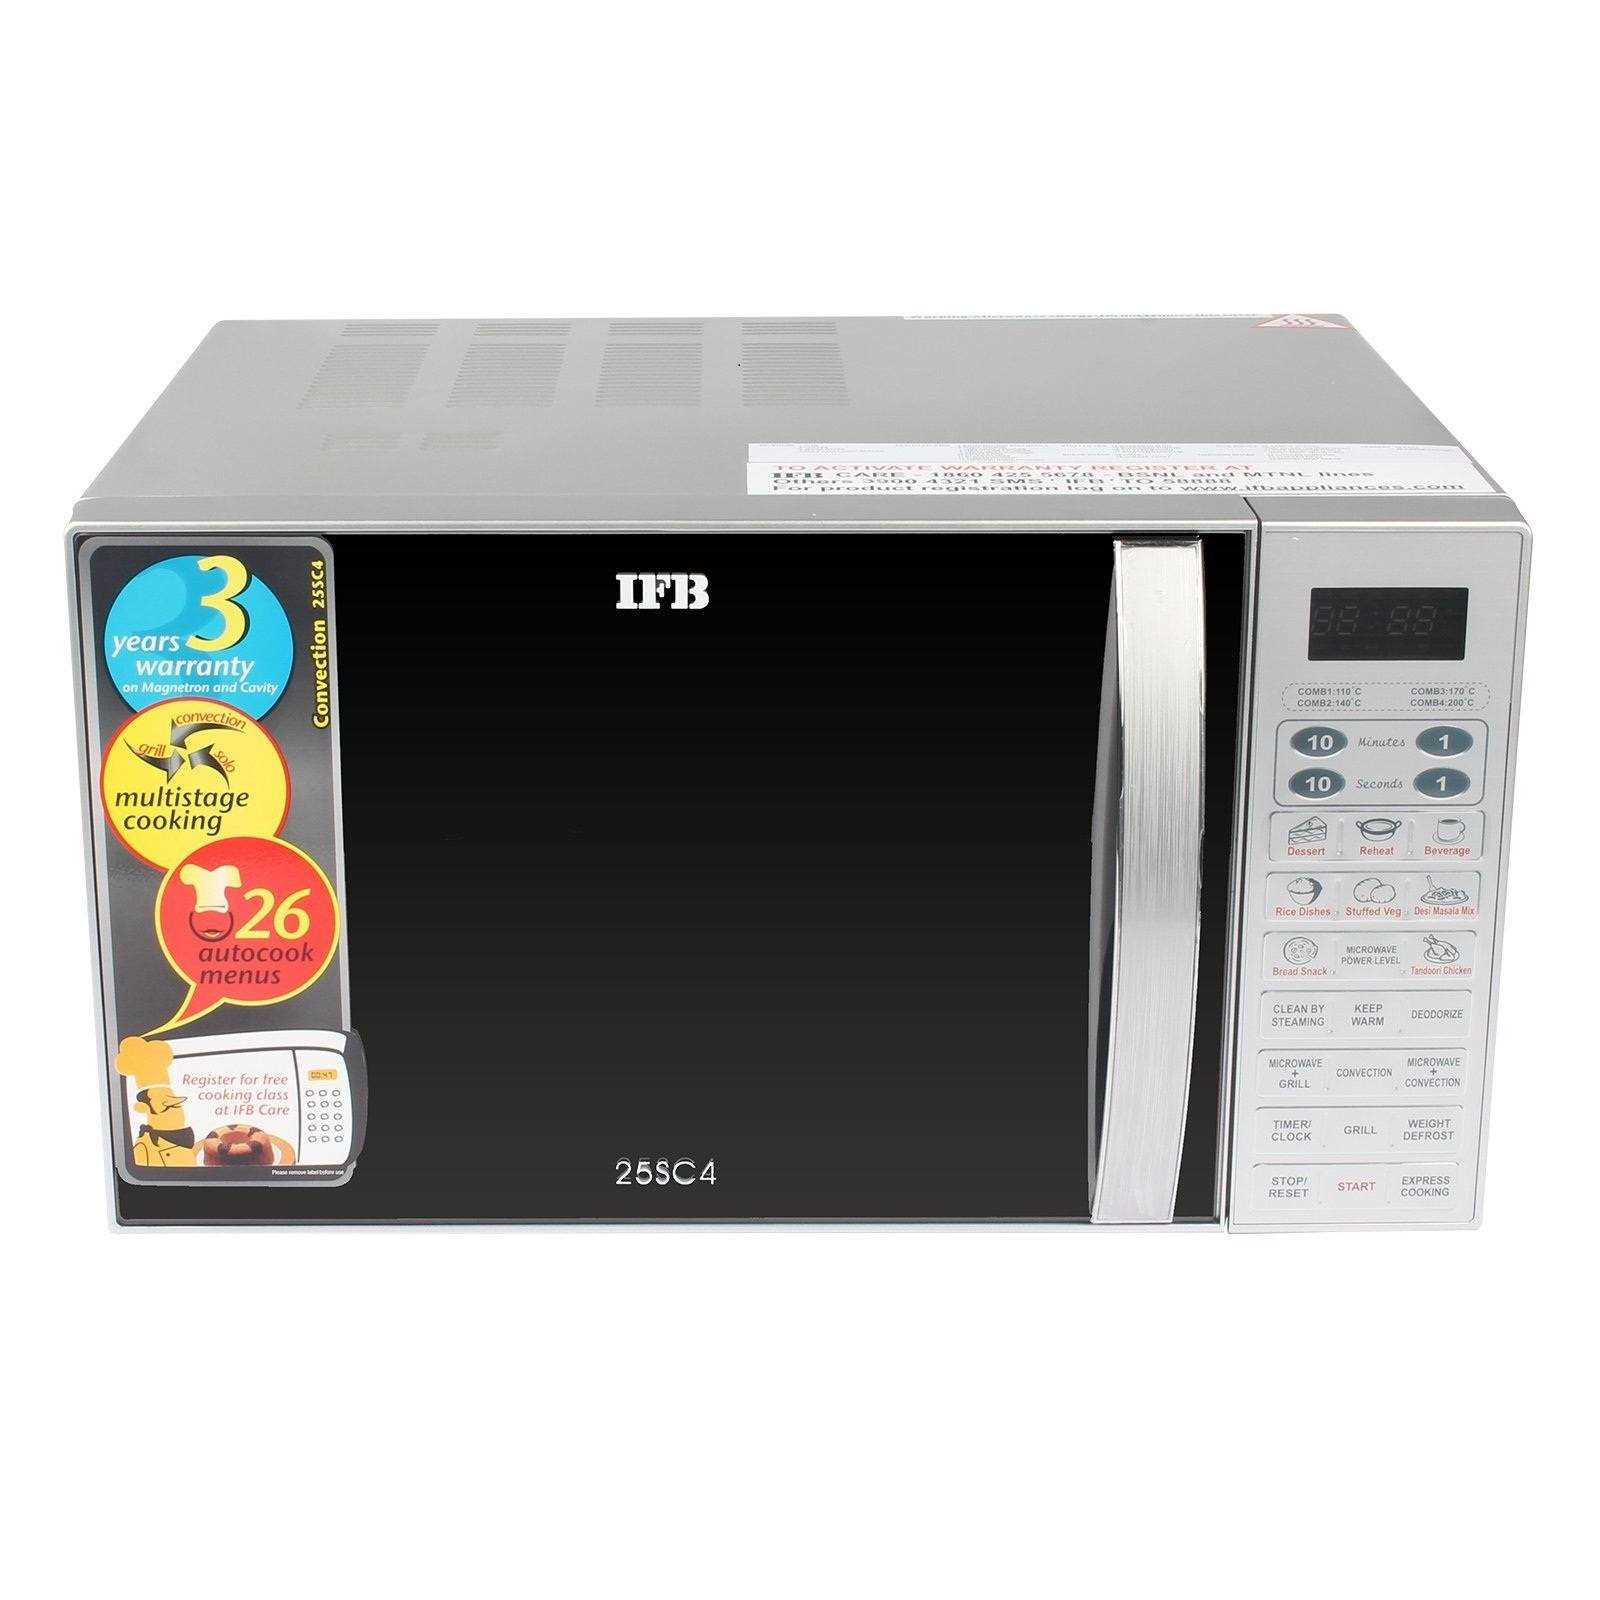 Best Microwave Oven In India 2019 Under 10000: 10 Best Microwave Ovens In India 2019 Reviews And Buyer's